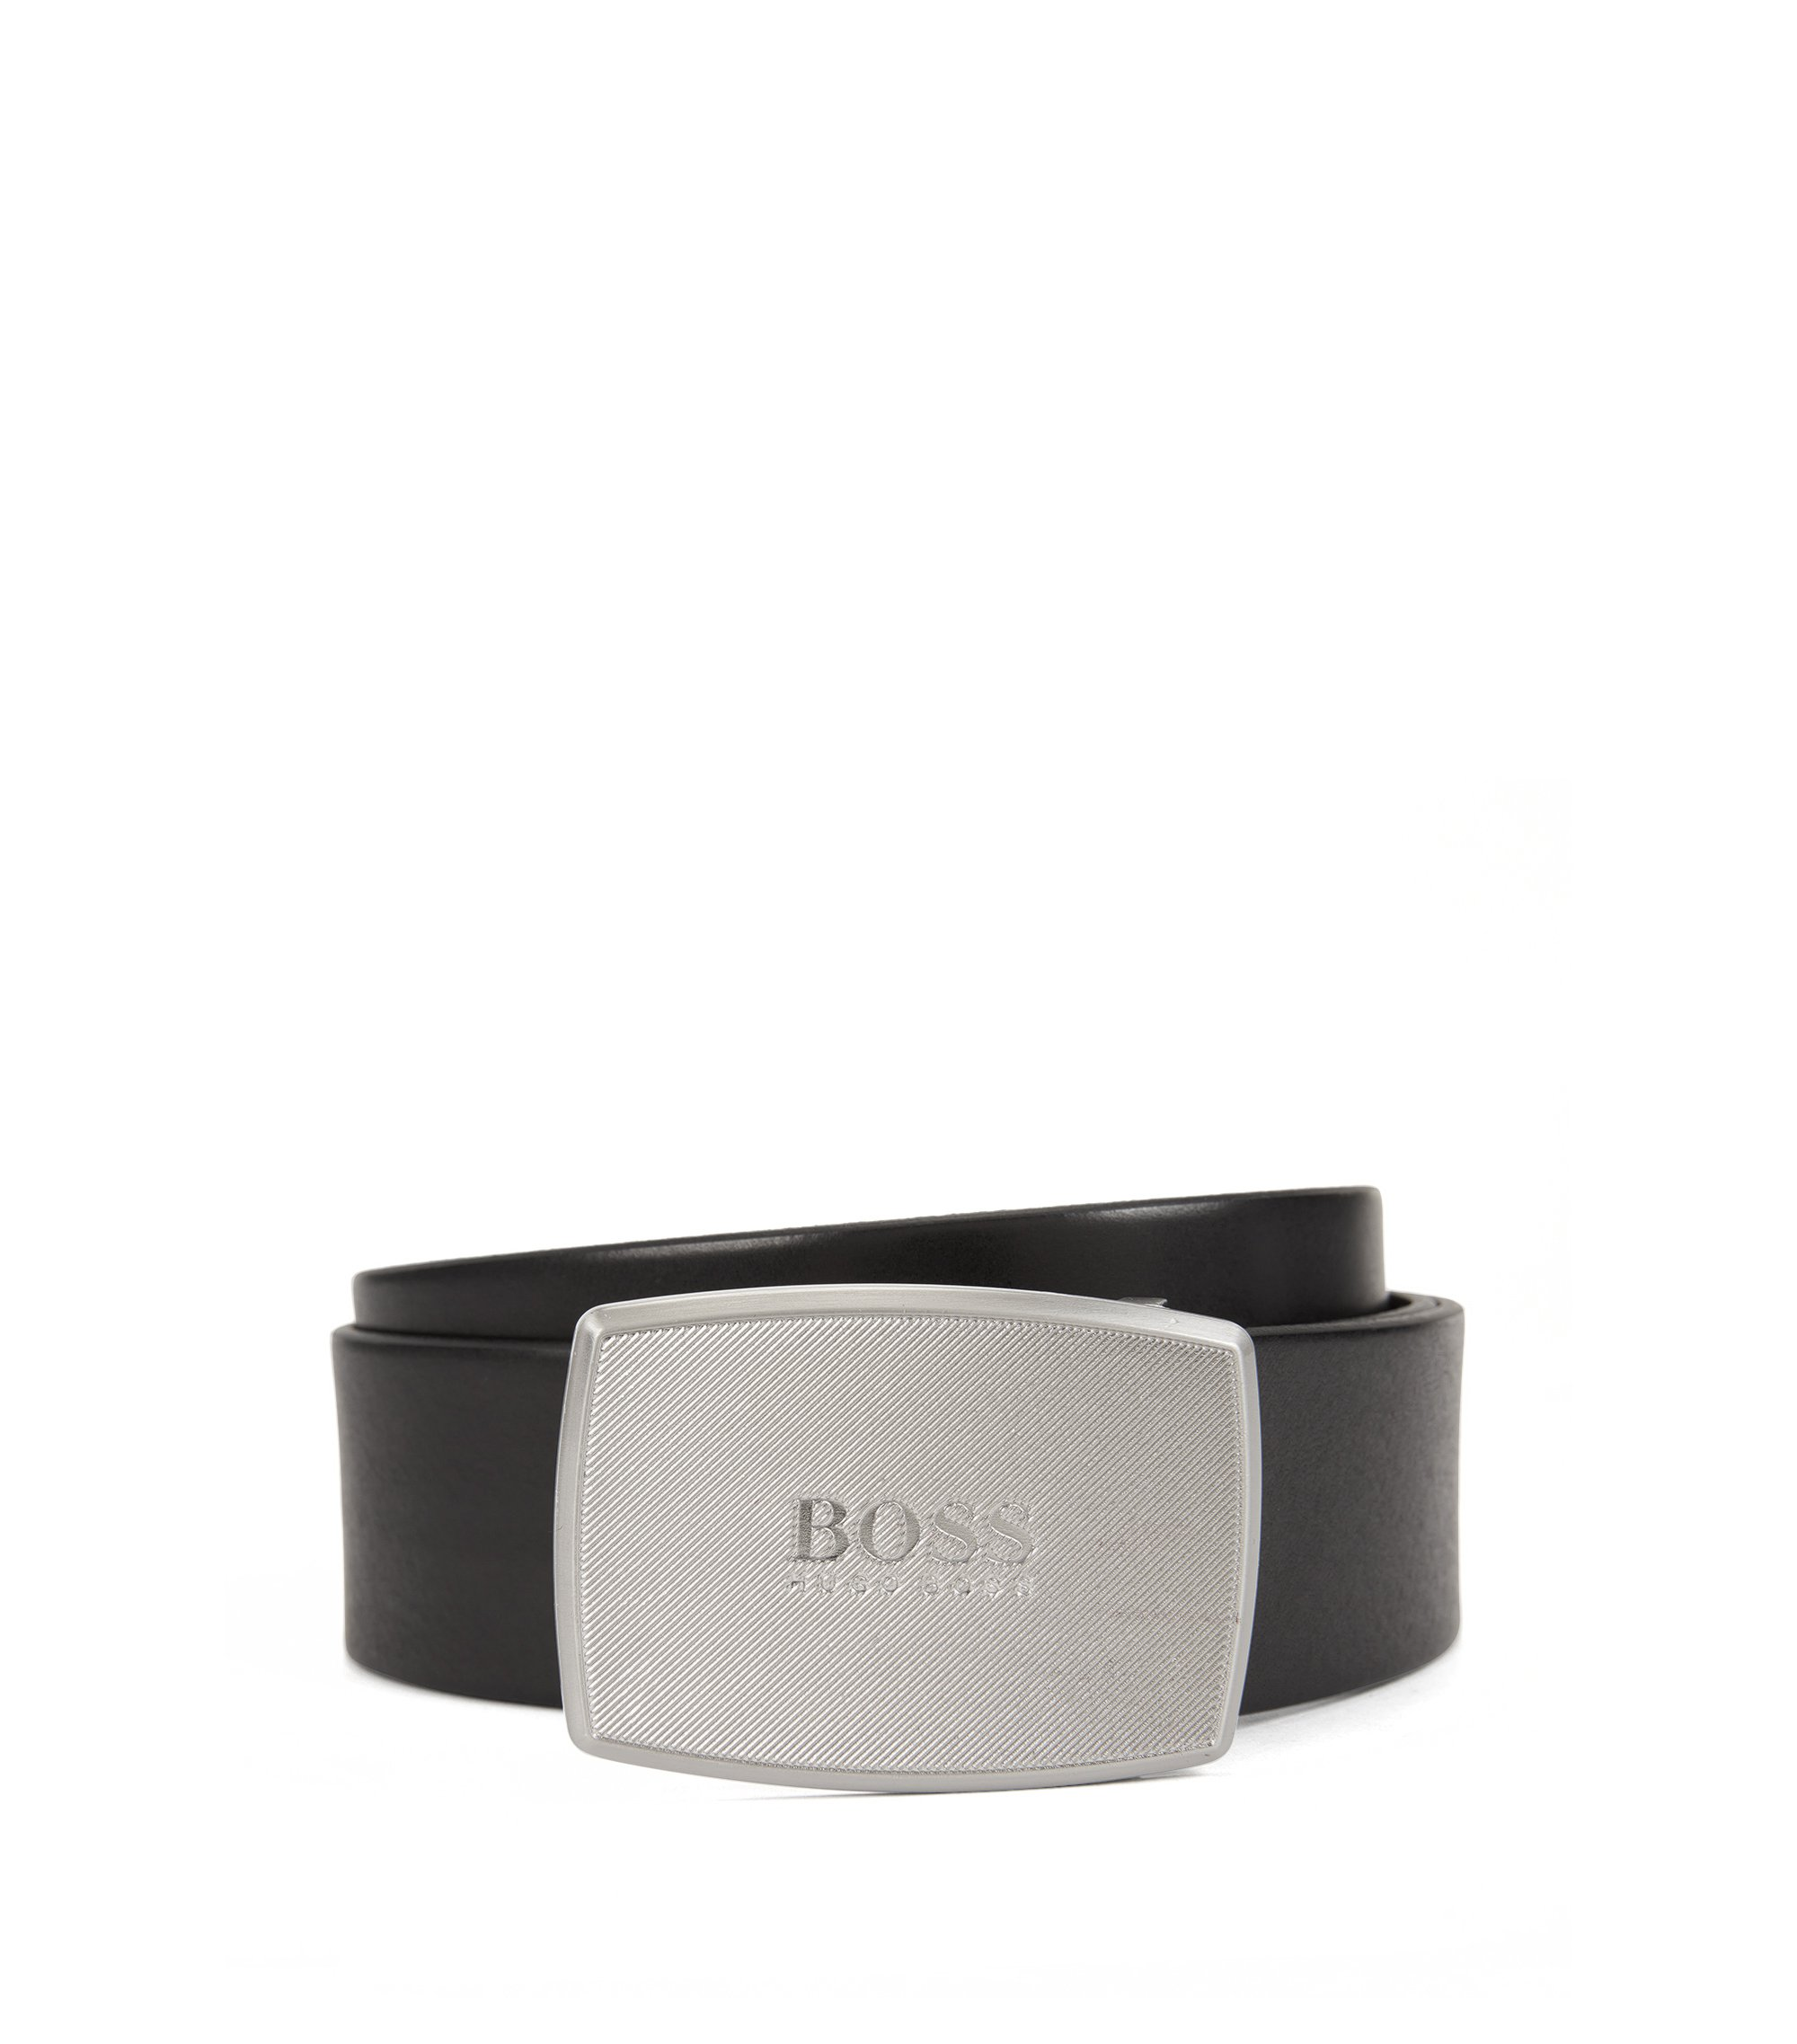 Smooth leather belt with textured plaque buckle, Black